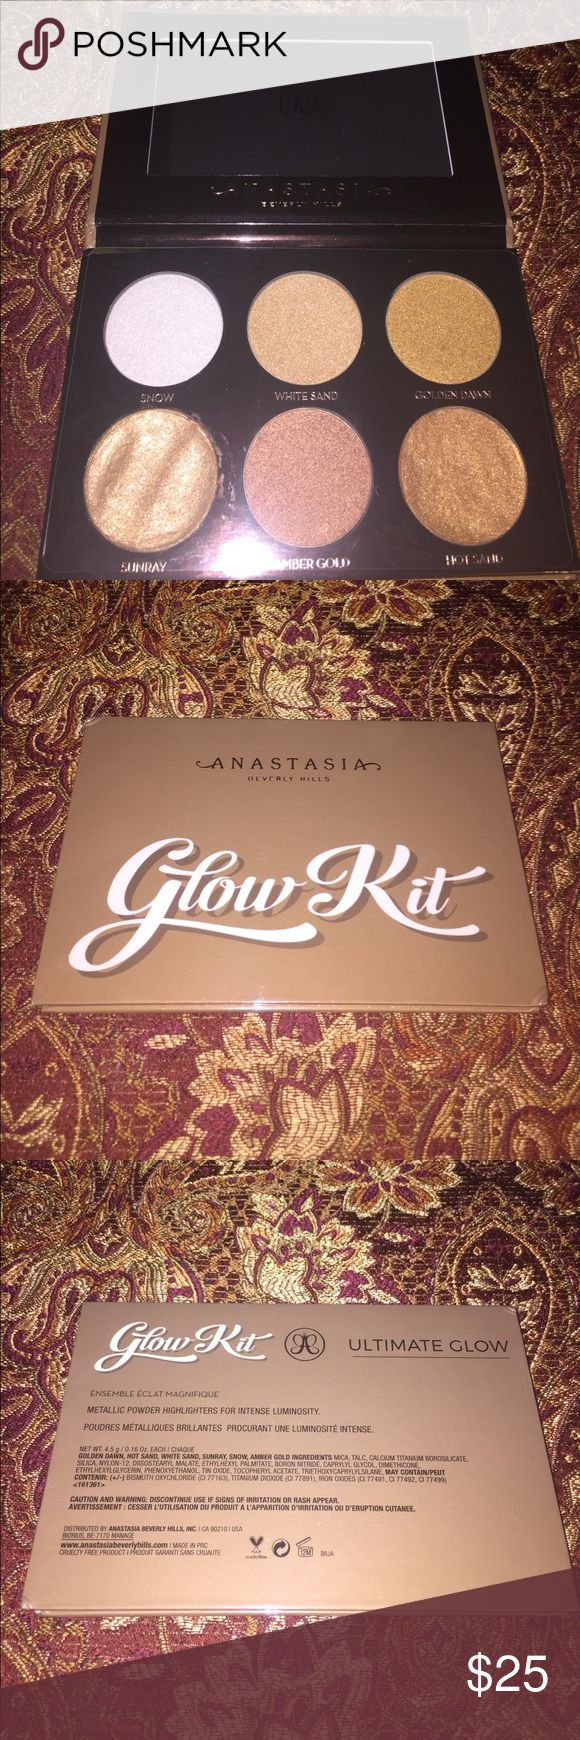 ABH Anastasia Beverly Hills Ultimate Glow Kit New FIRSM Price. No trades. Thanks! ABH Anastasia Beverly Hills Ultimate Glow Kit New, never used but 2 pans arrived broken so I repressed the 2 highlighters with a paper towel and alcohol. I have the receipt to proof that it is authentic. Anastasia Beverly Hills Makeup Luminizer